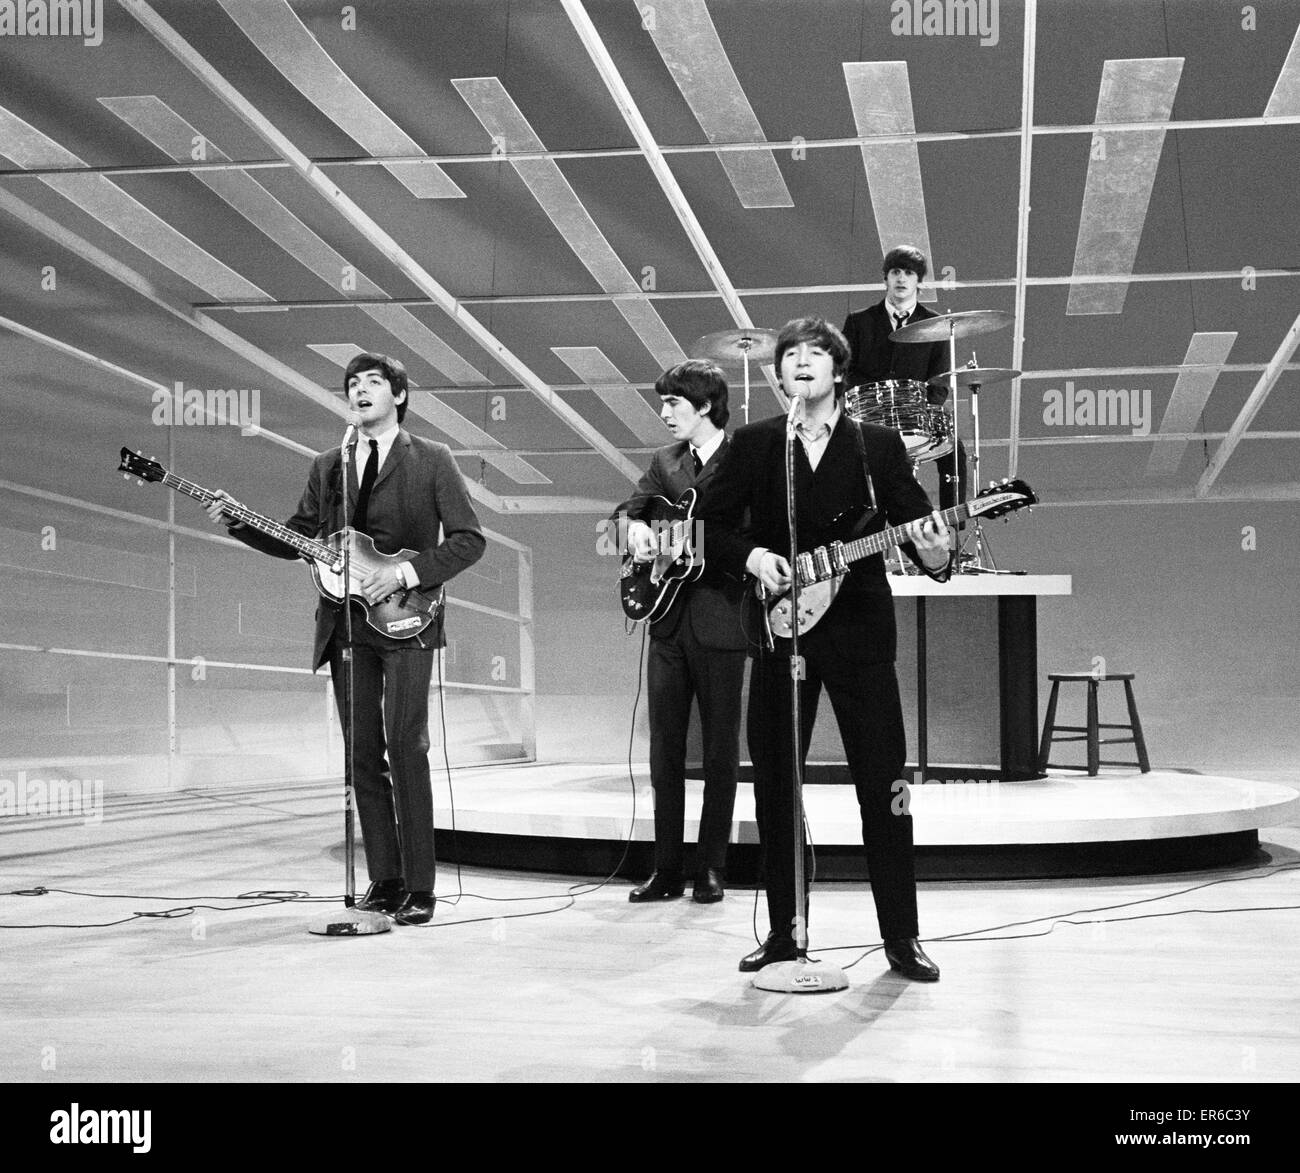 Beatles Files 1964 John Lennon Paul McCartney George Harrison and Ringo Starr rehearse their appearance on the Ed - Stock Image